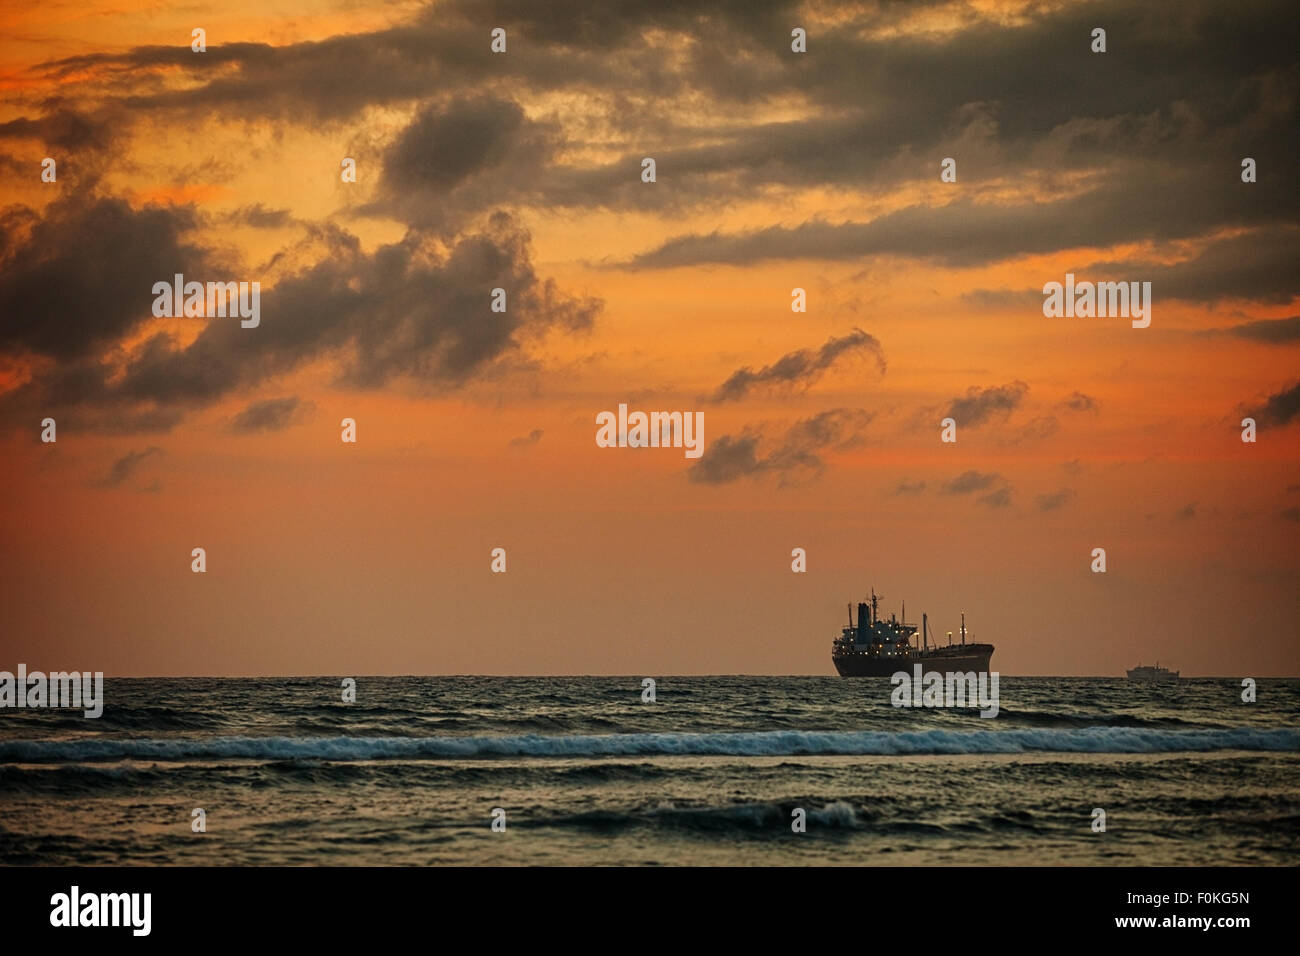 Enormous tanker ship, passing in the distance, along the horizon on this tropical sea at sunset. - Stock Image